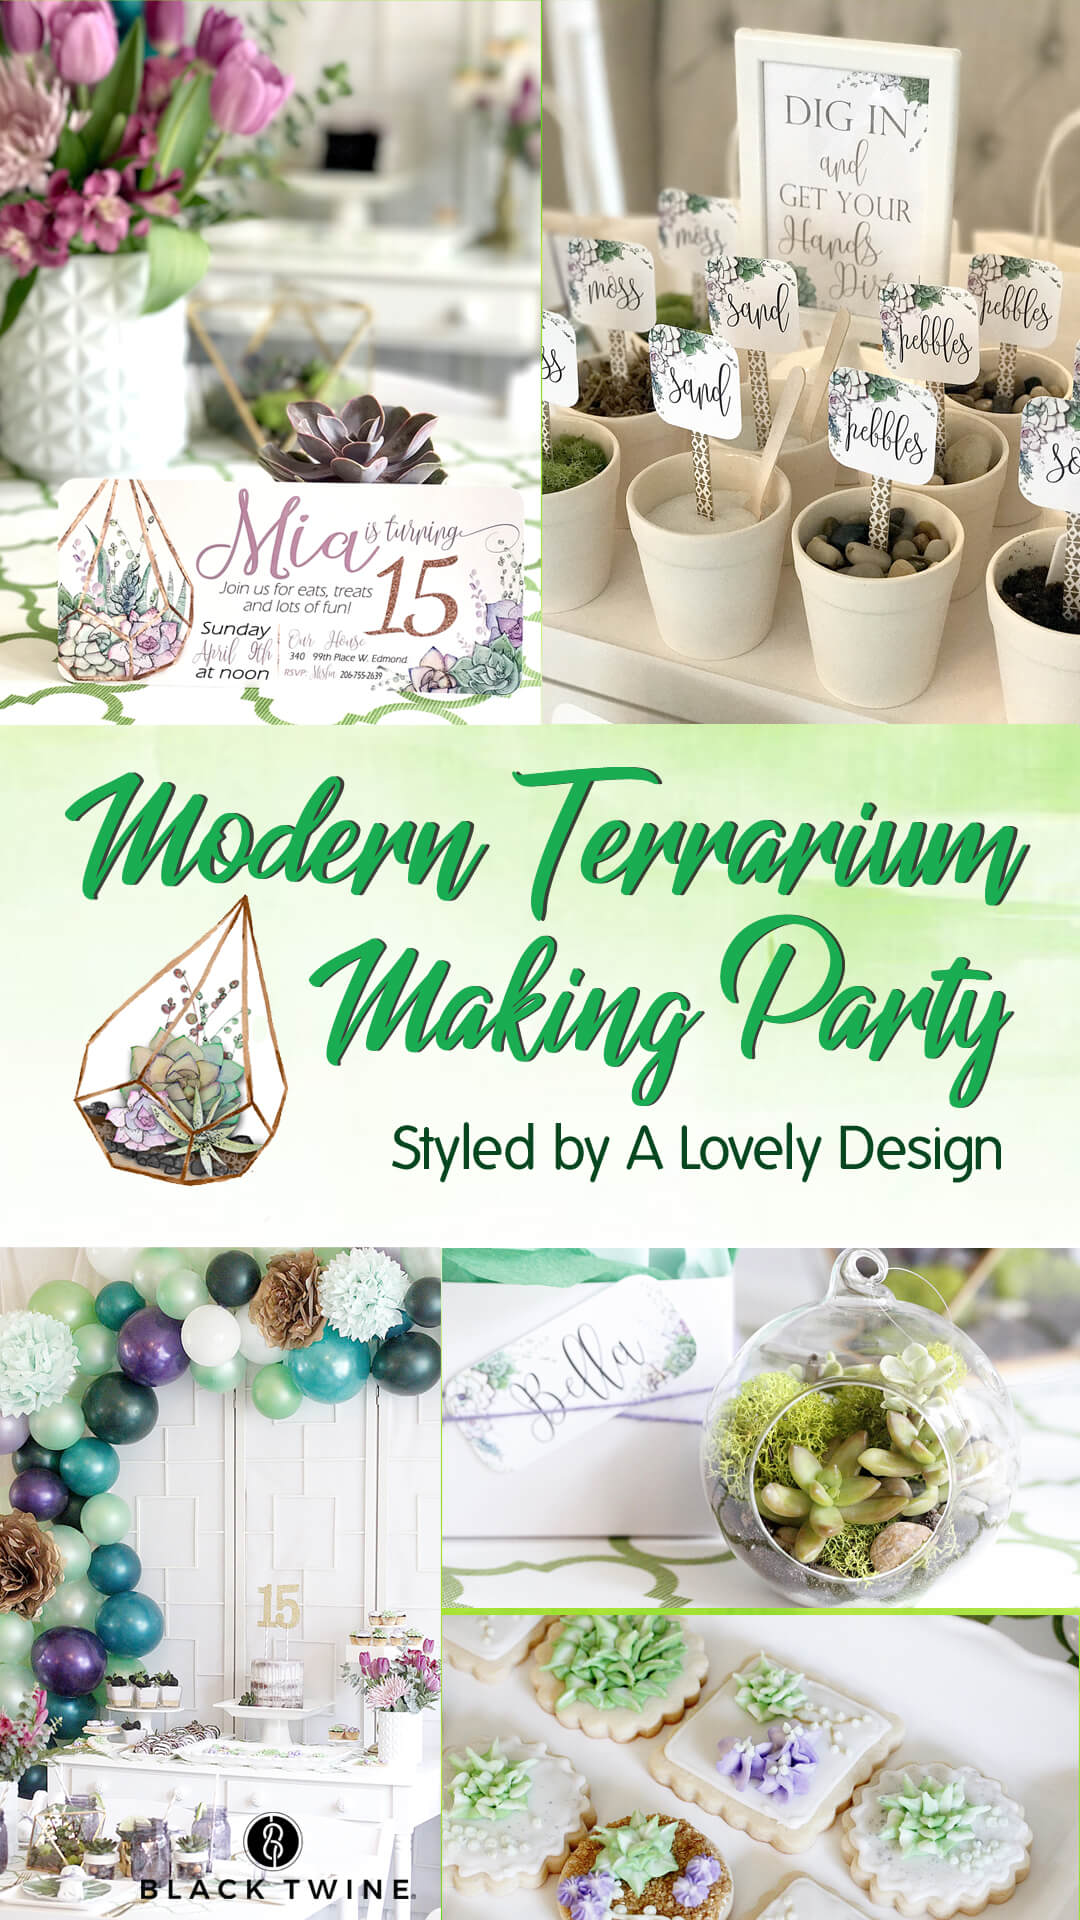 Modern Terrarium Making Party styled by A Lovely Design   Black Twine